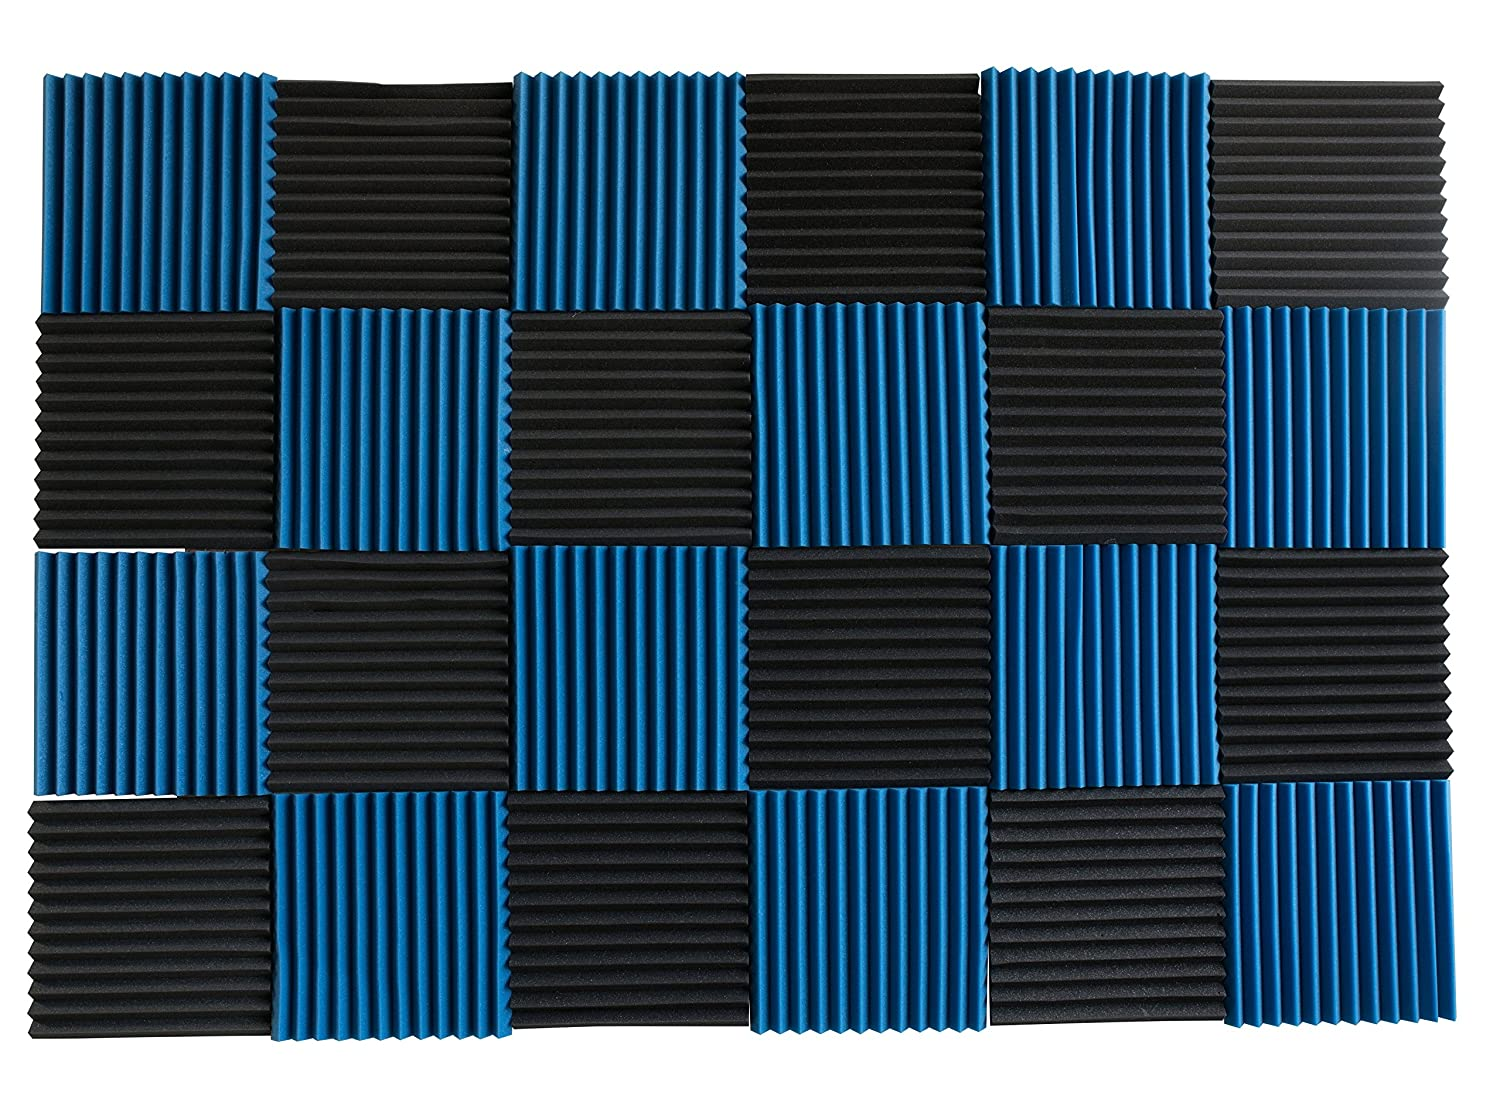 24 Pack - All Ice Blue Acoustic Panels Studio Soundproofing Foam Wedges 1